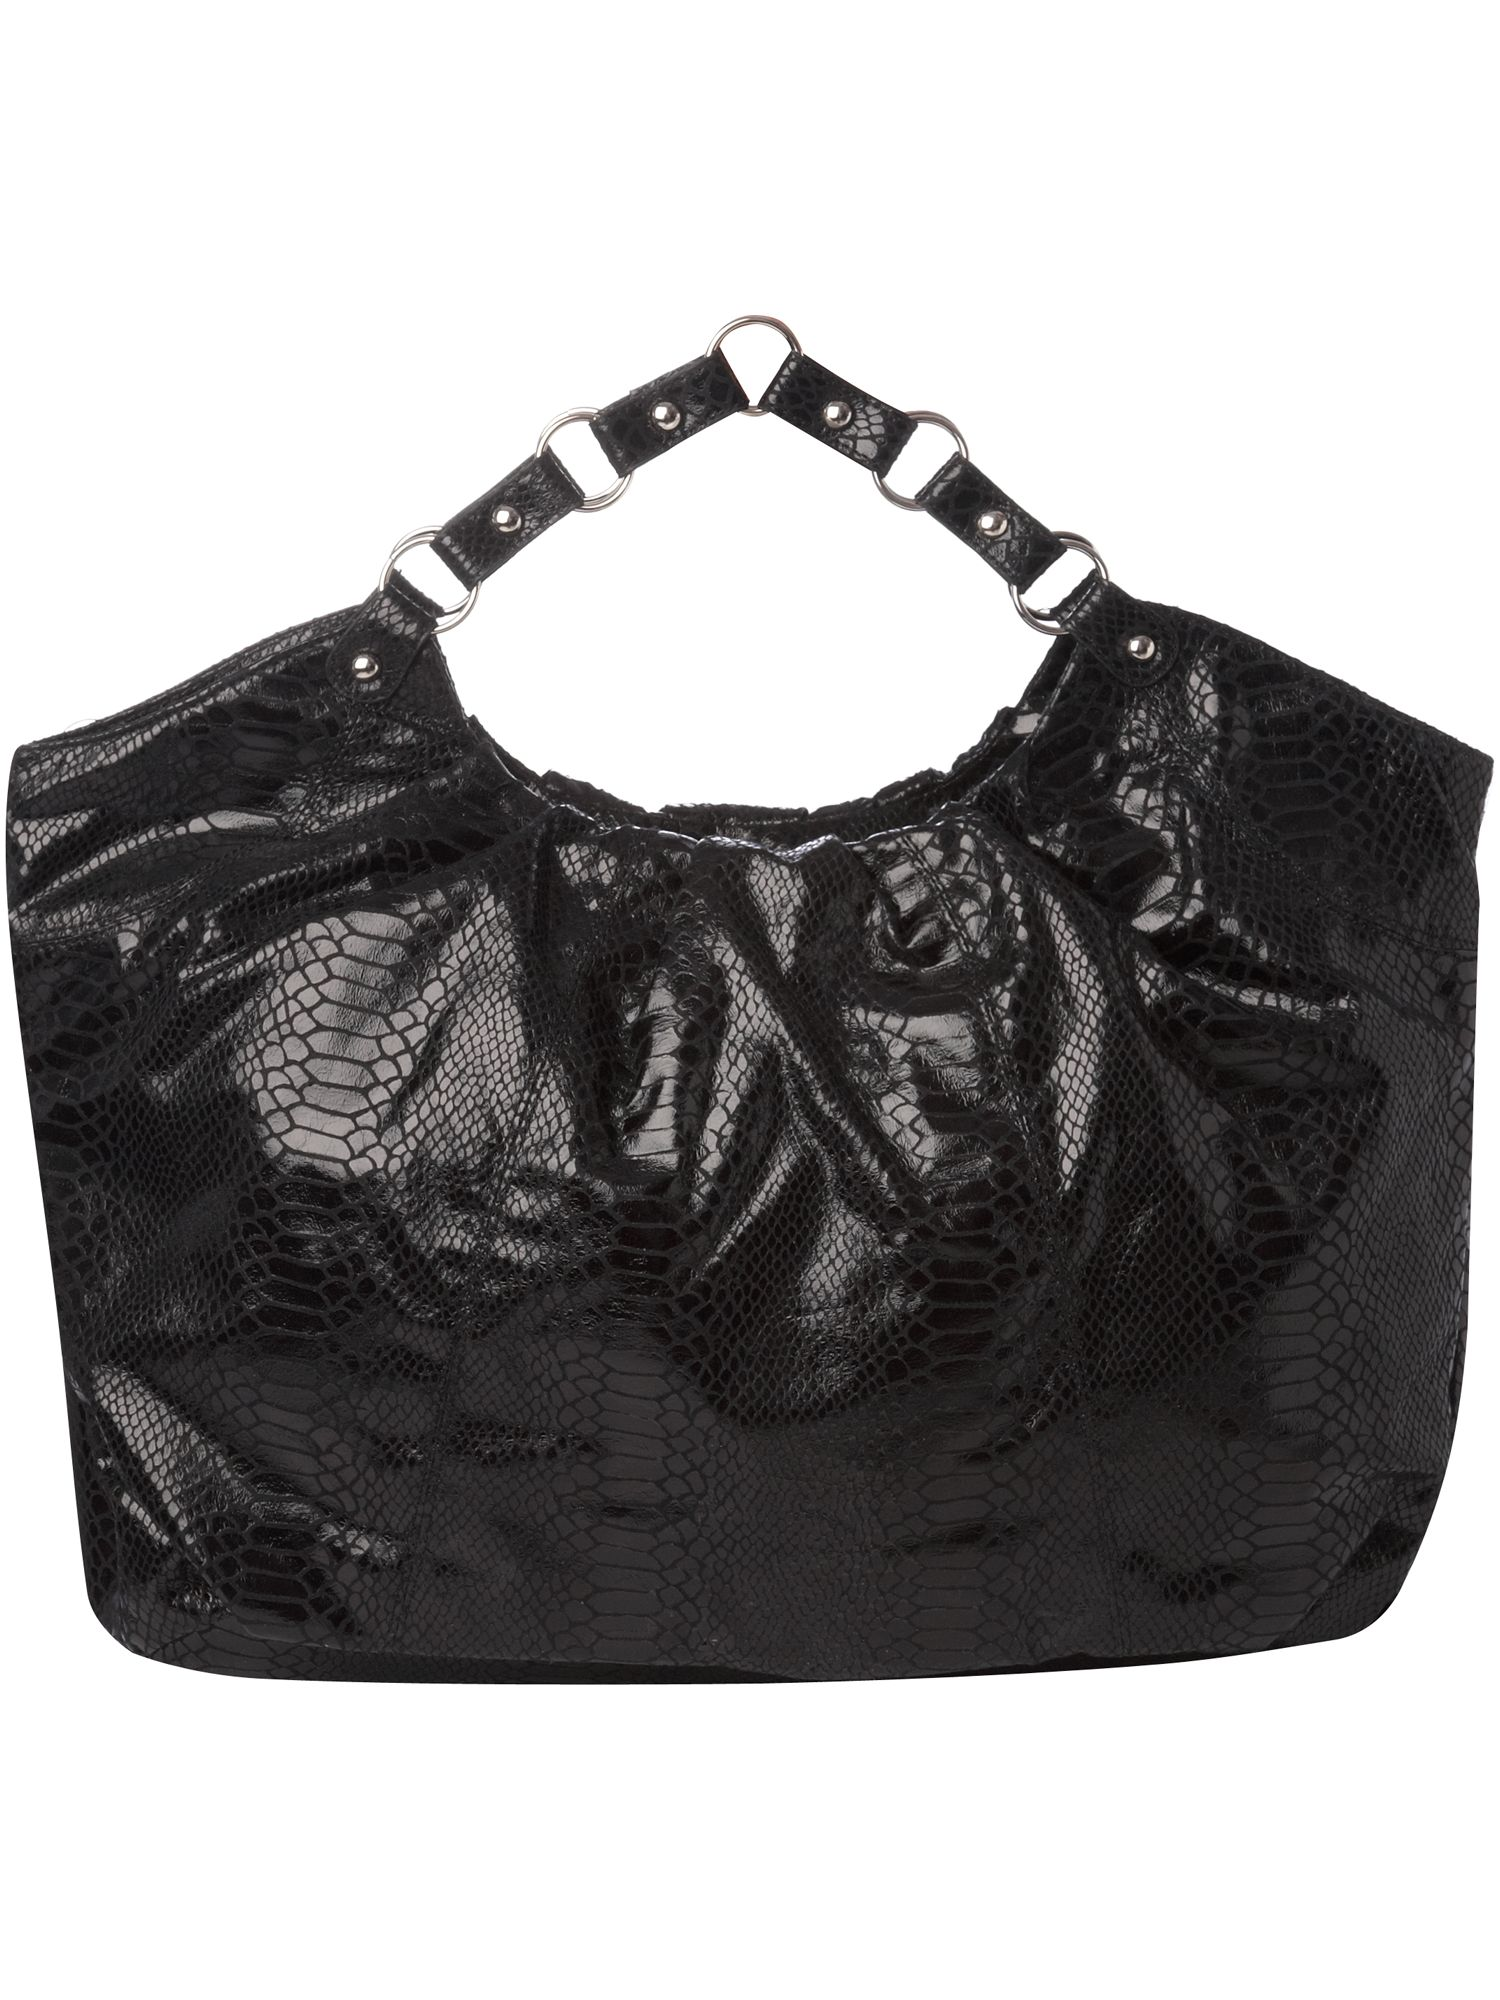 Therapy GI Jane faux snake slouch chain handle bag product image